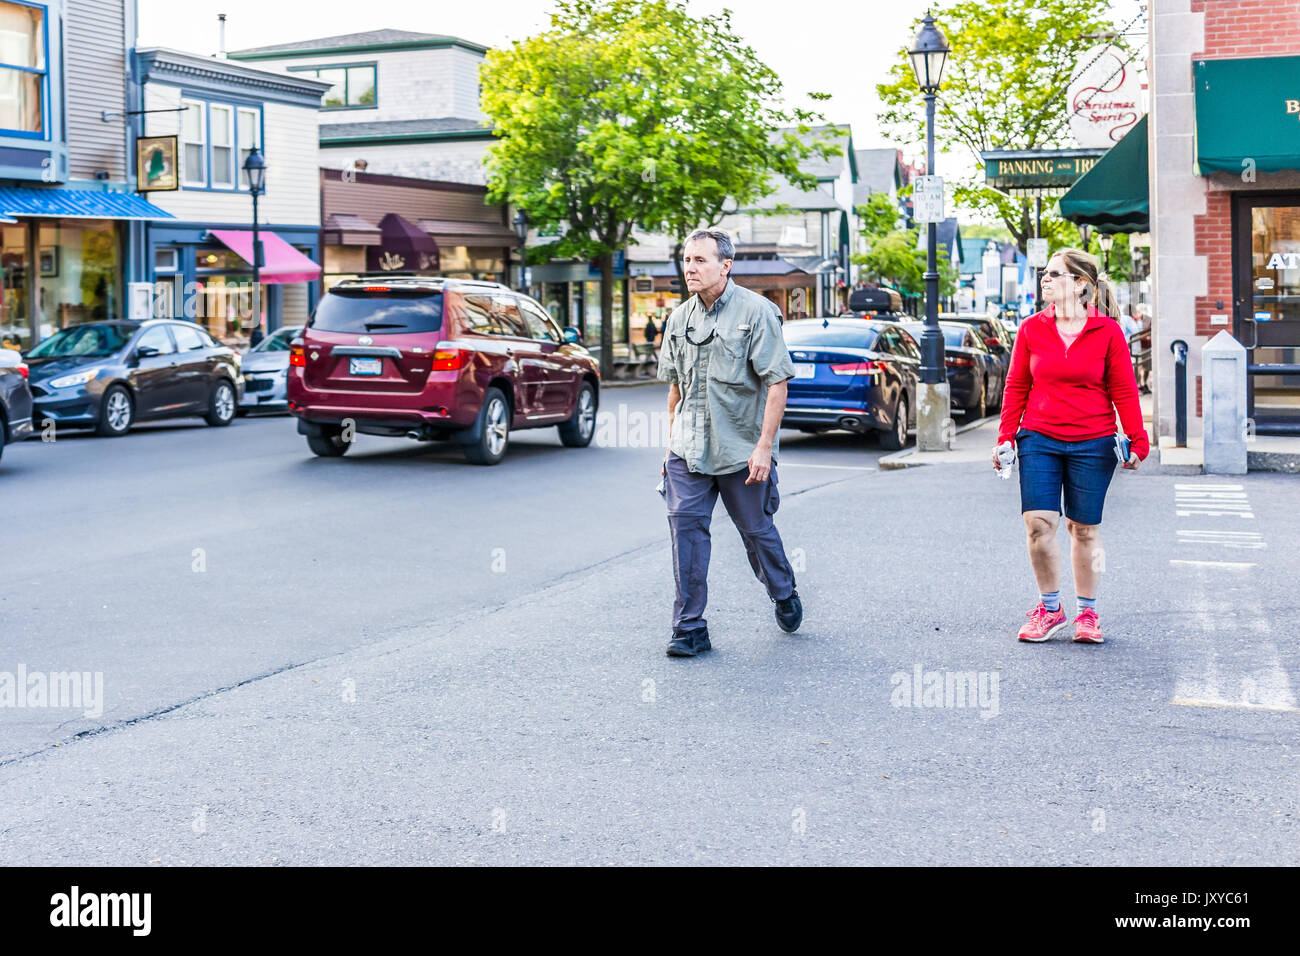 Bar Harbor, USA - June 8, 2017: People crossing sidewalk street in downtown village in summer on main road - Stock Image